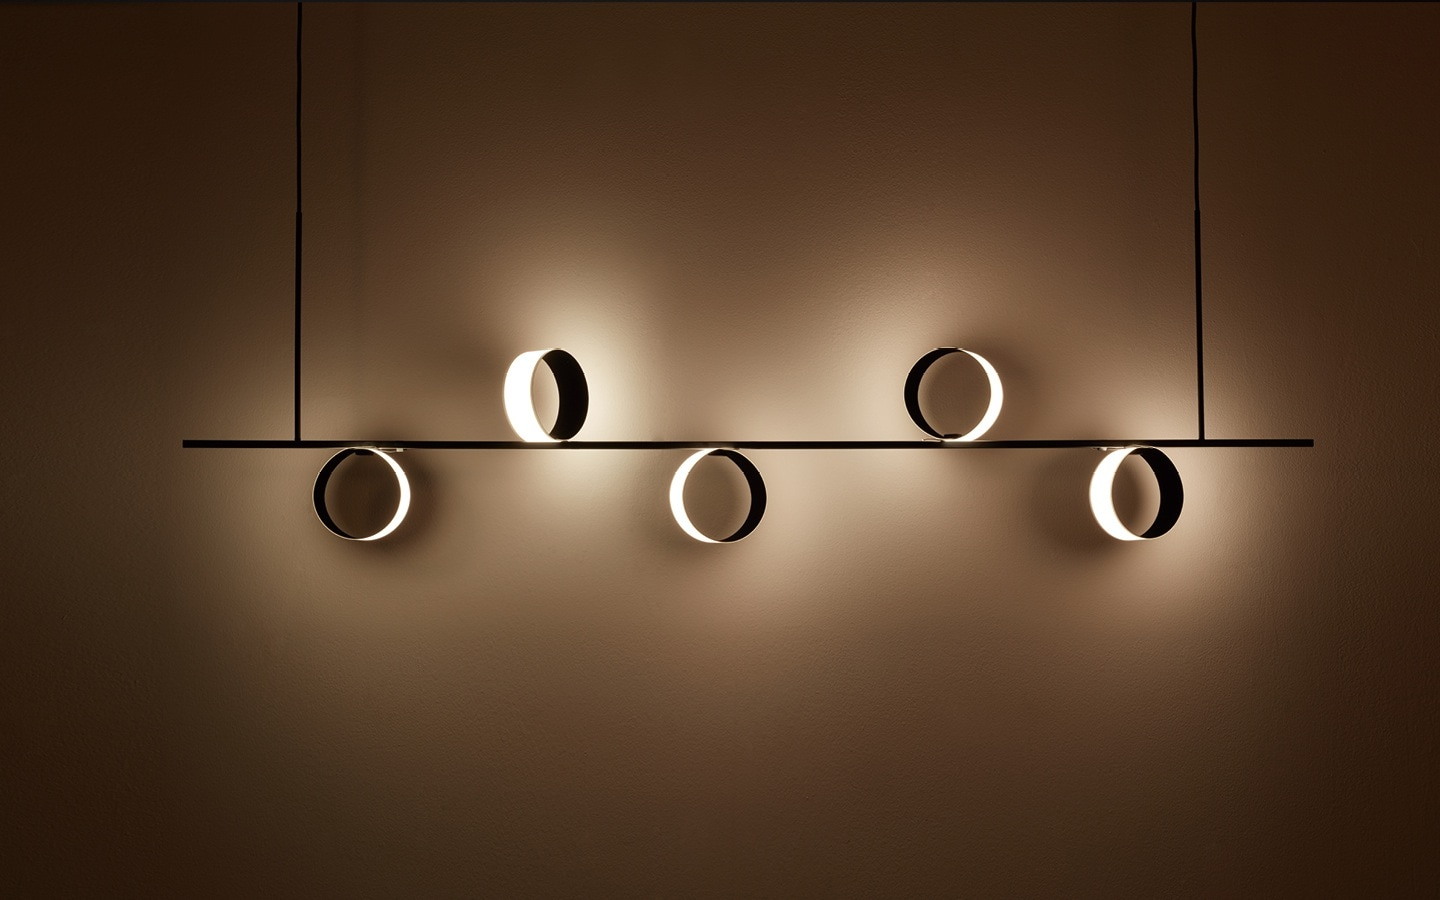 Oled Lighting Panels Pictures to Pin on Pinterest